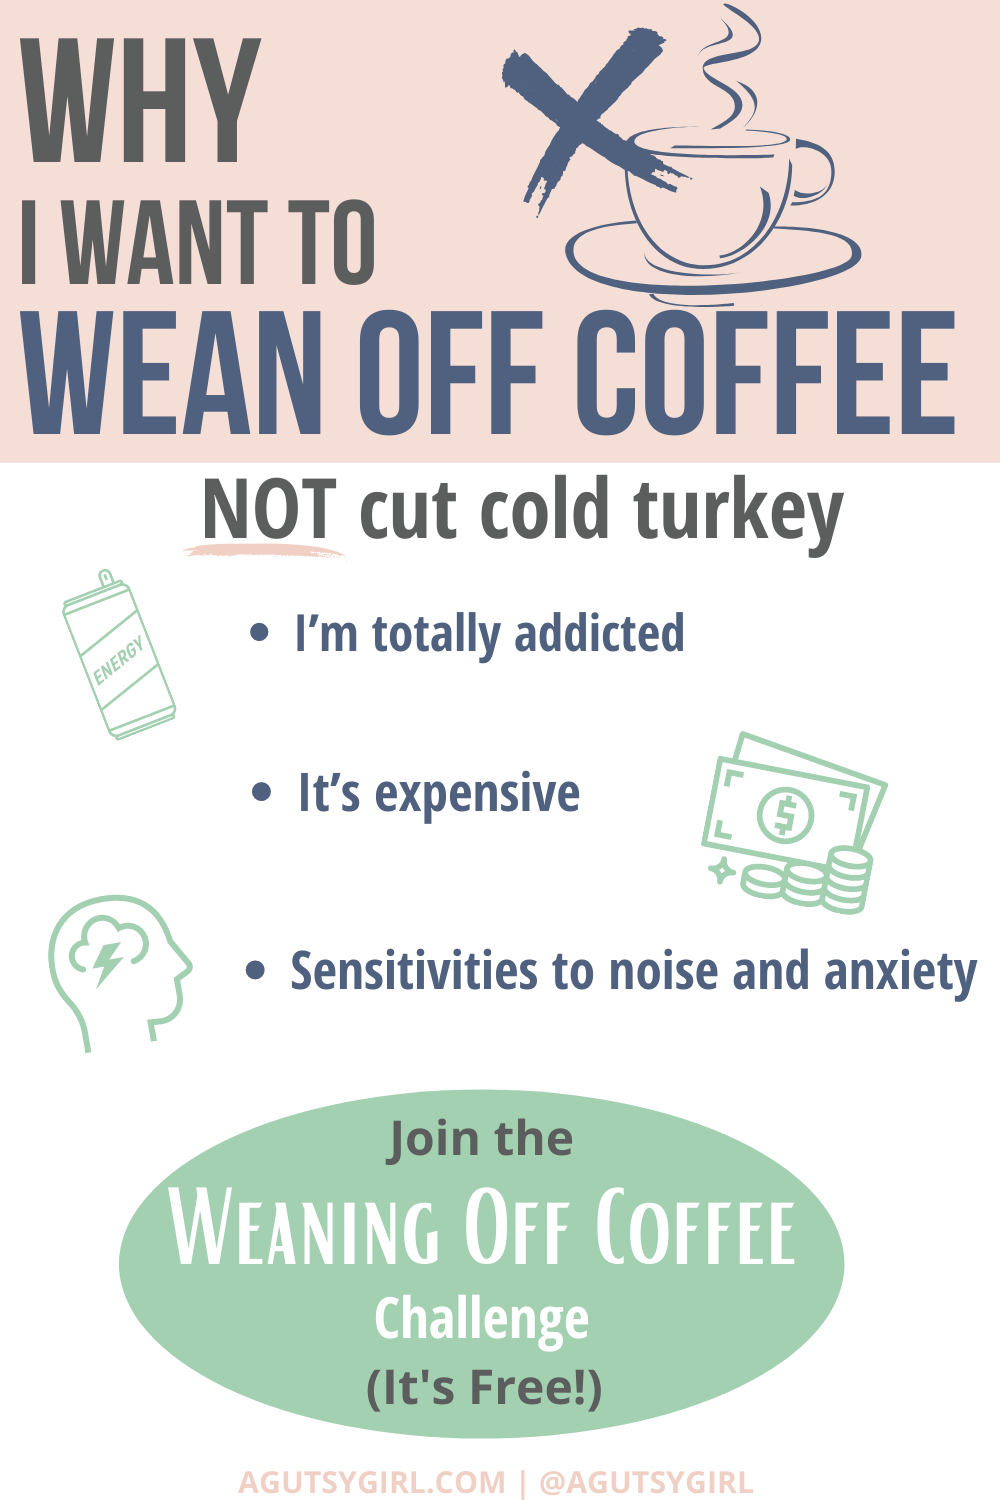 Why I Want to Wean Off Coffee agutsygirl.com #coffee #caffeine #weaningoffcaffeine #guthealth #healthchallenge